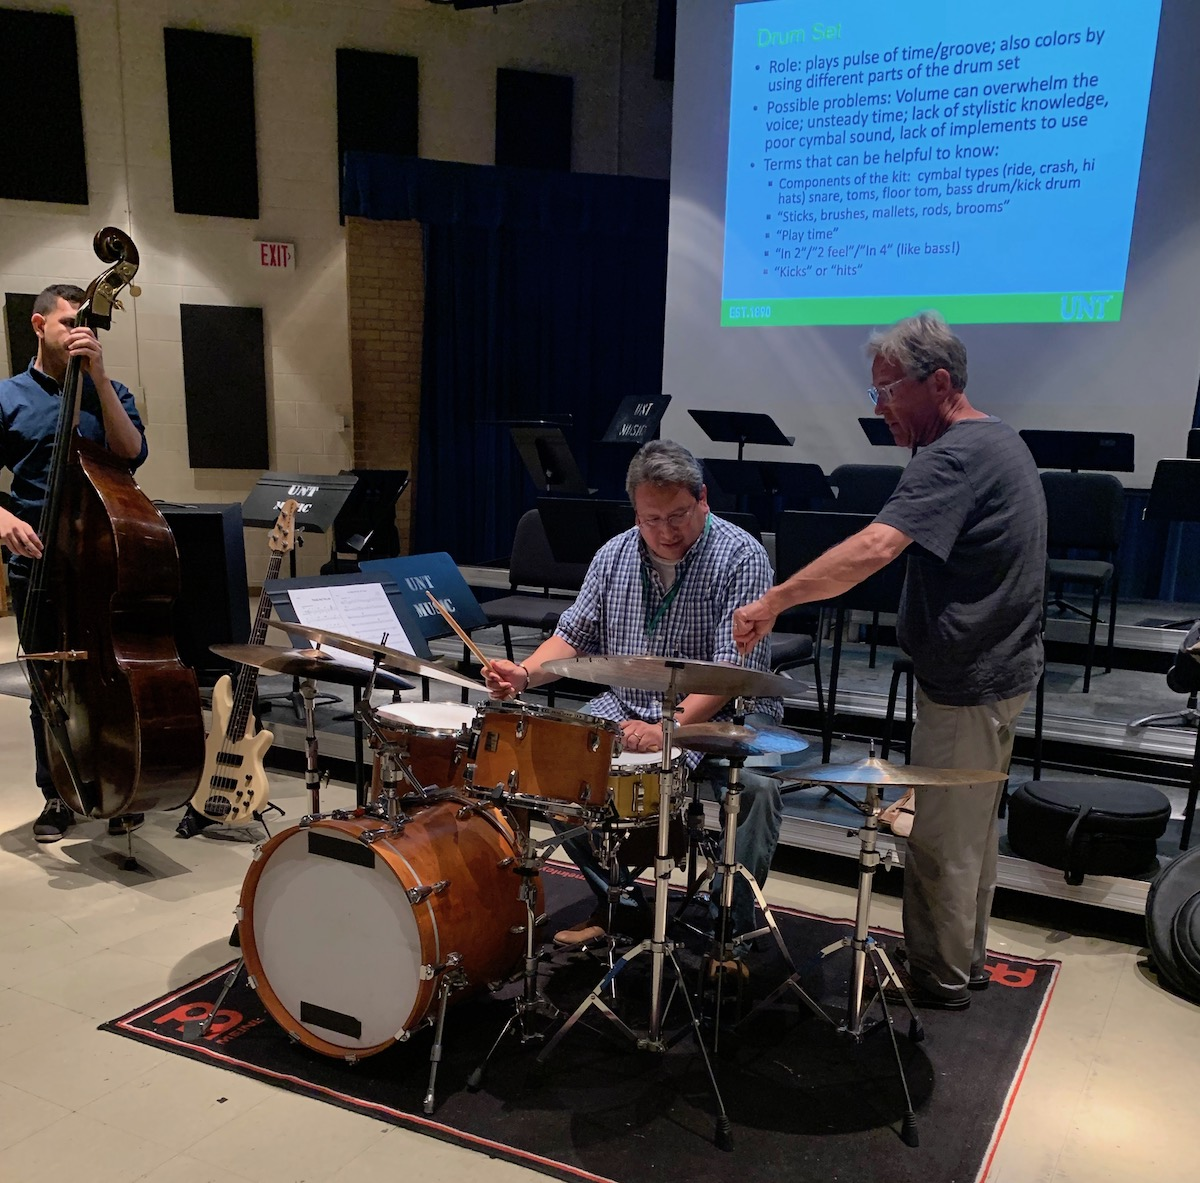 Learning to play jazz drums with a rhythm section!